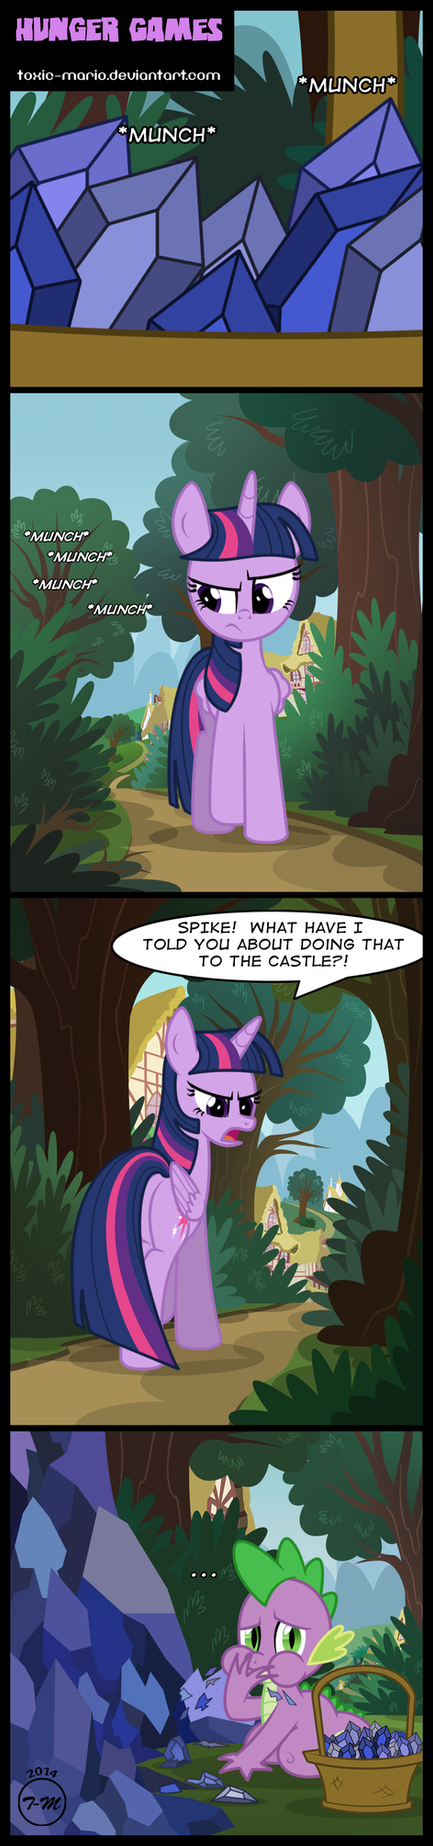 Hunger Games by Toxic-Mario